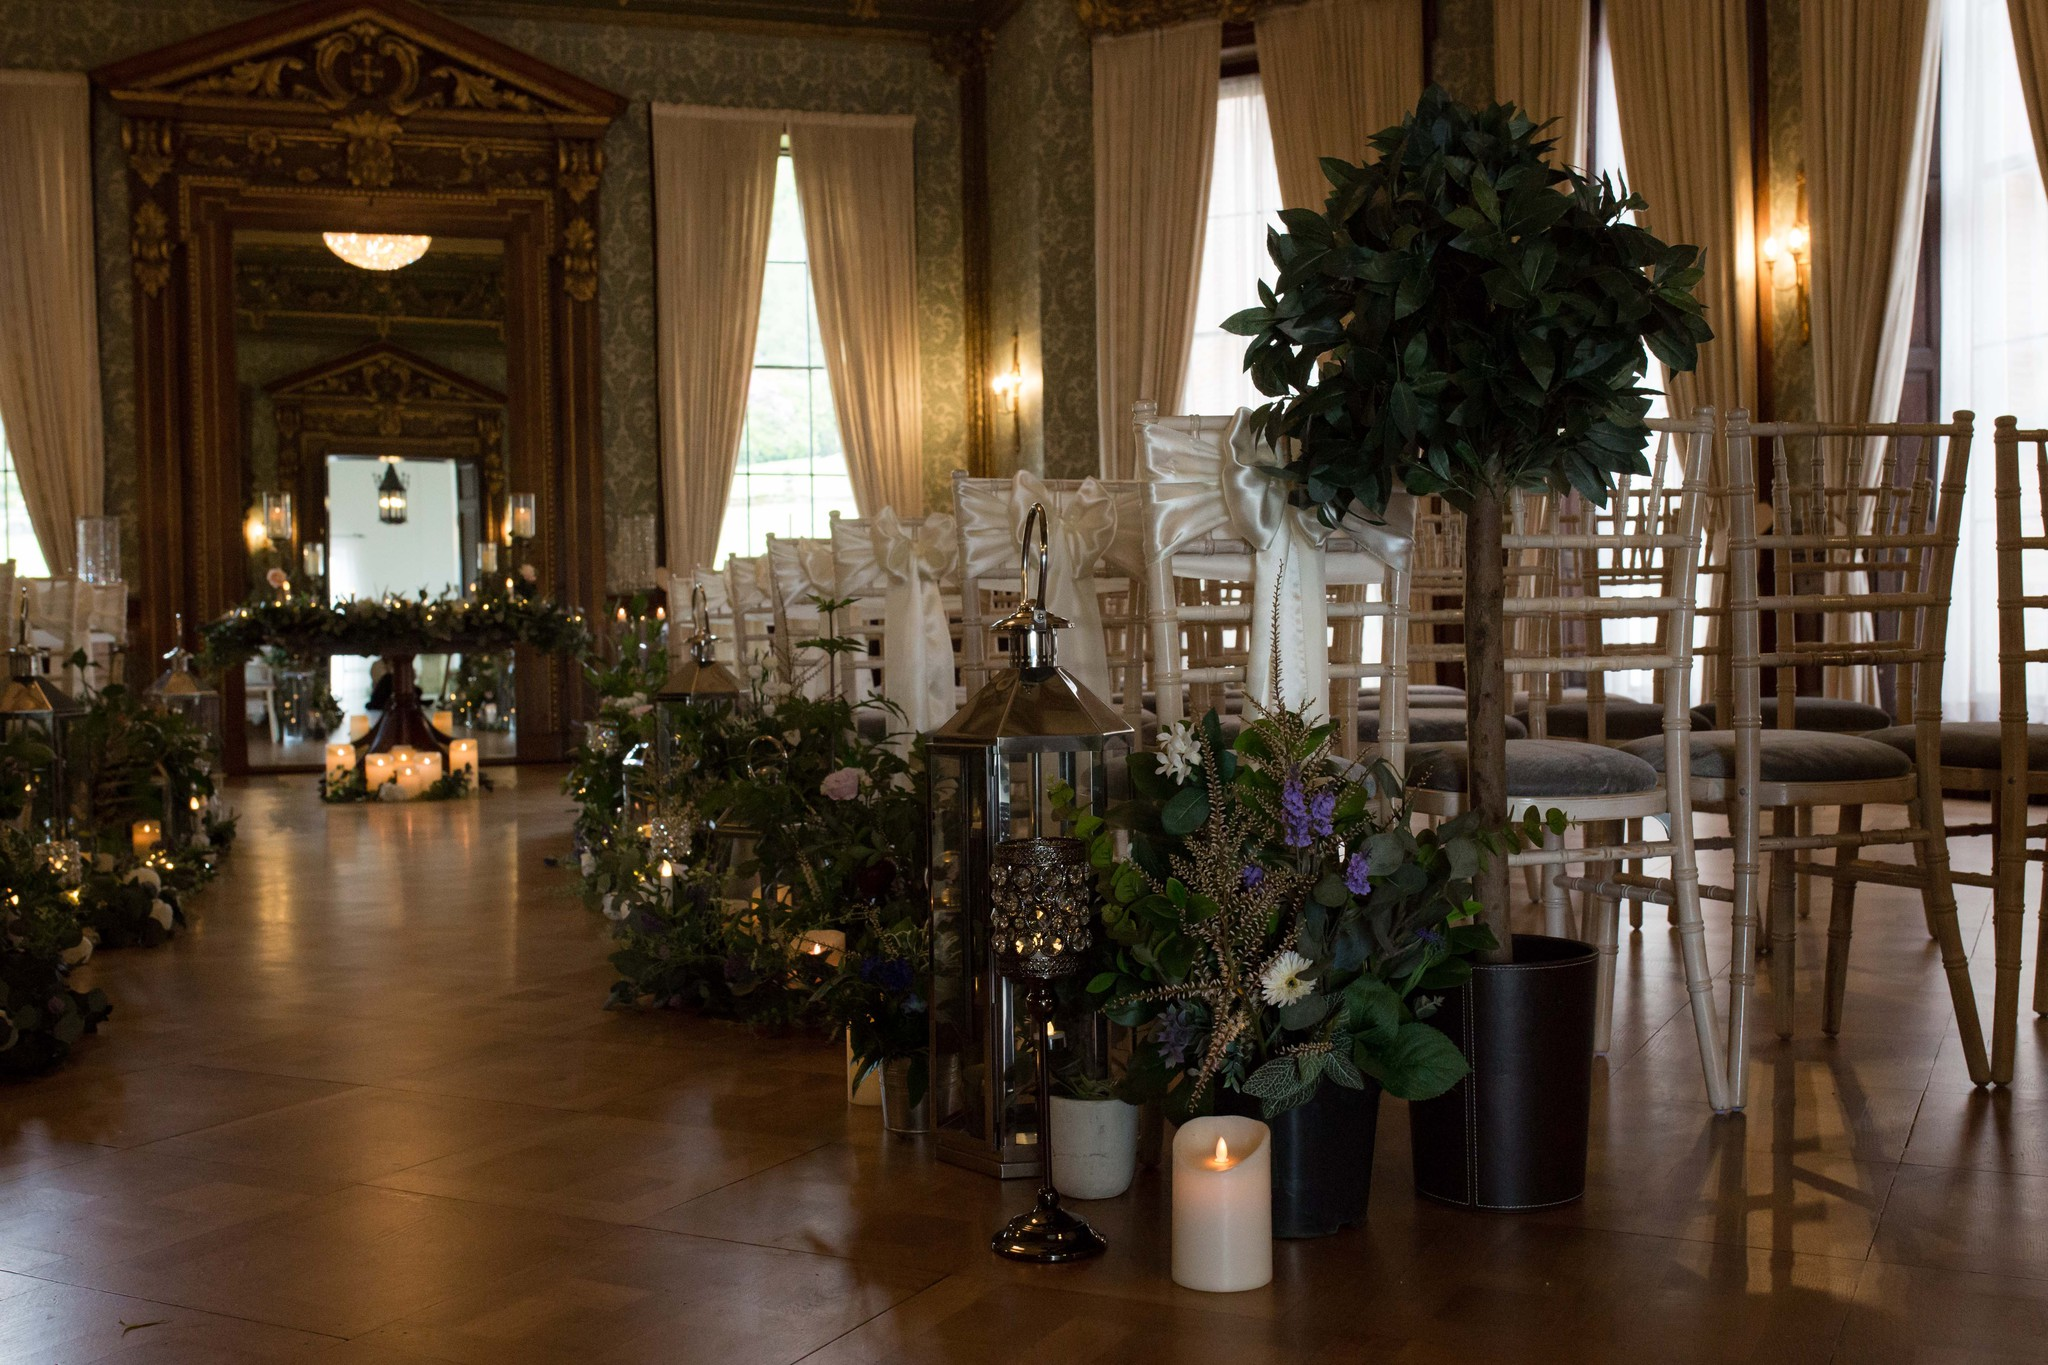 Hawkstone hall Ballroom ceremony set up